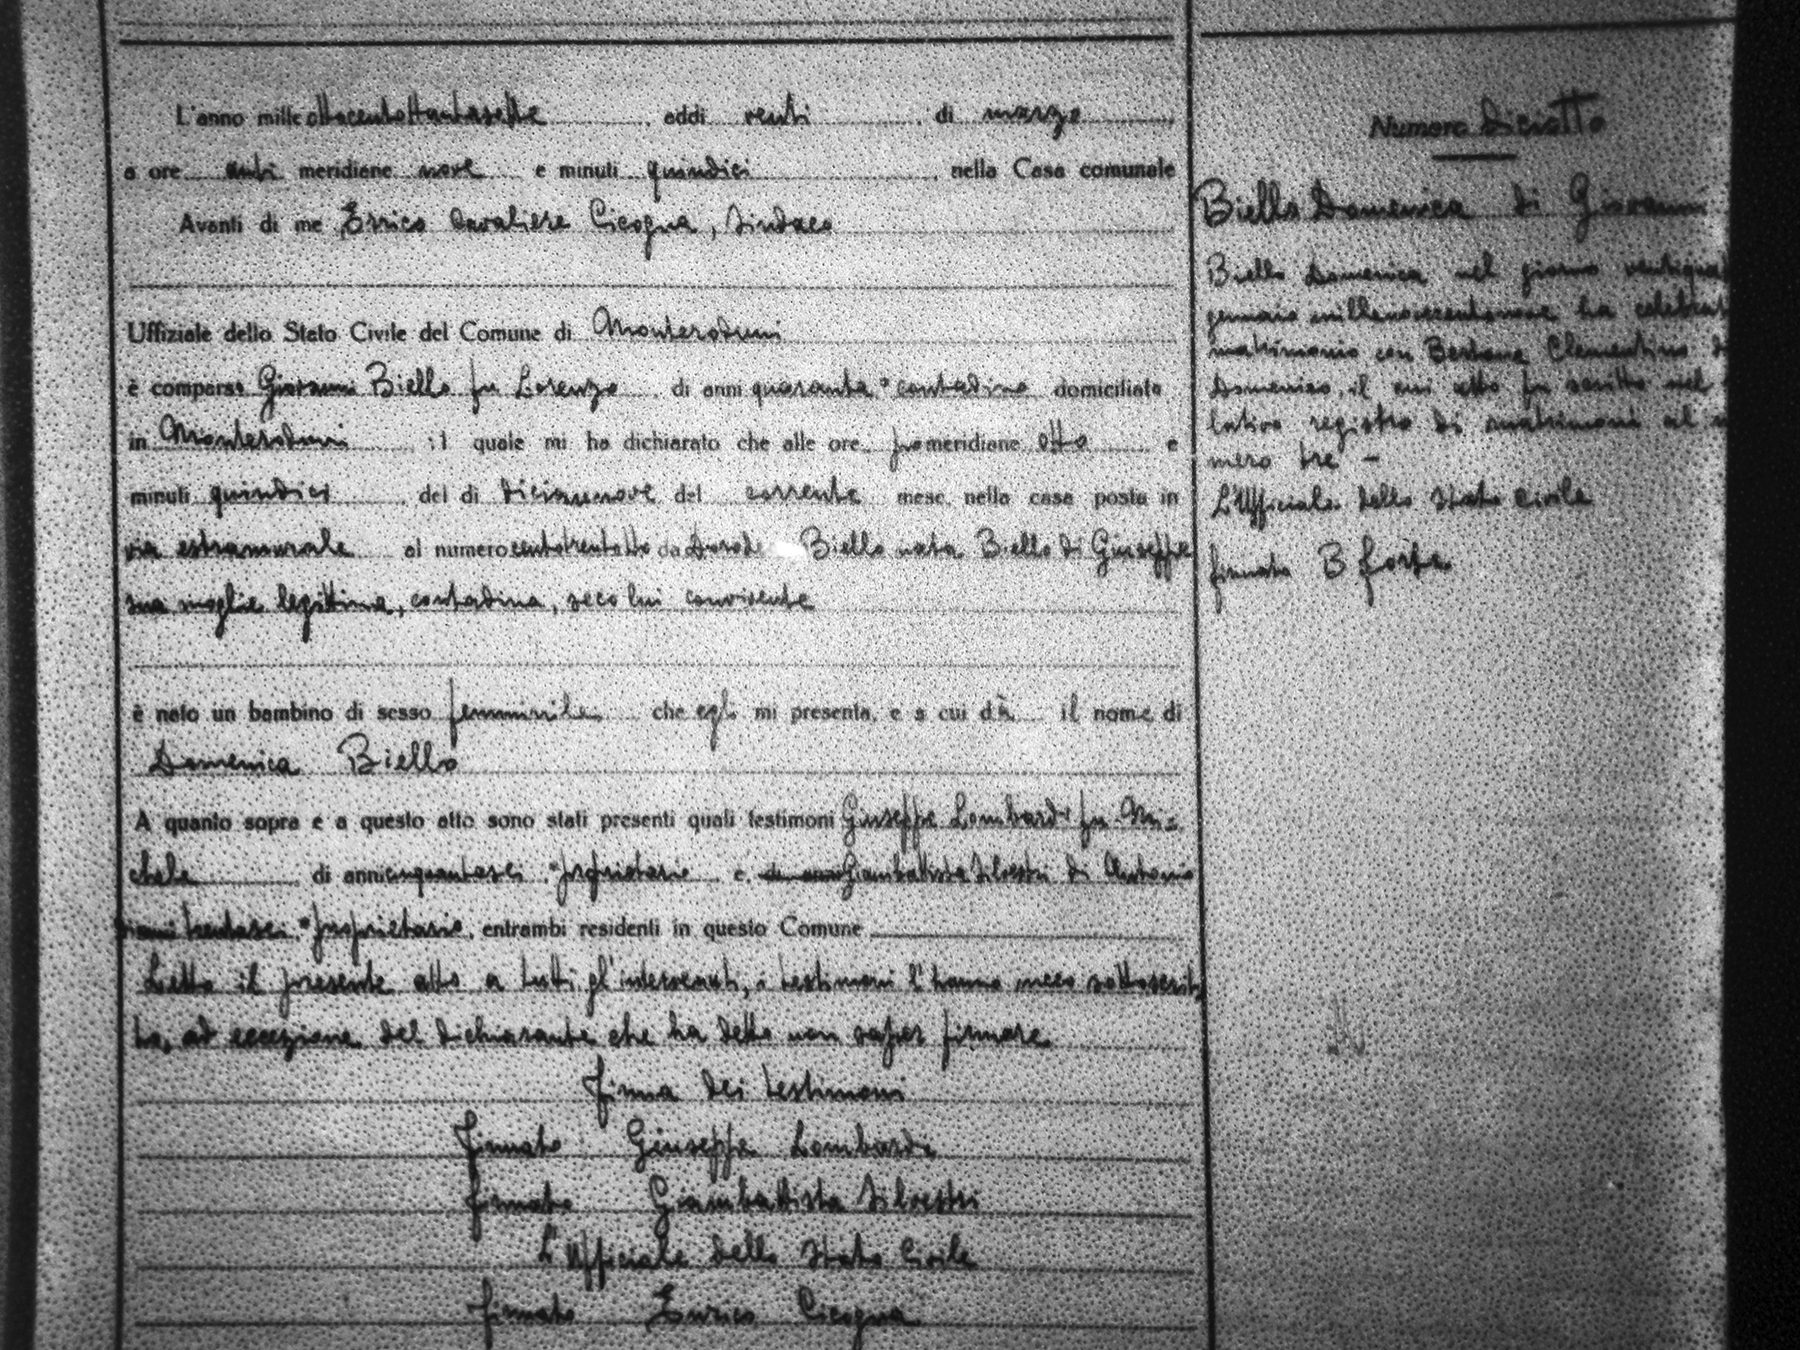 Domenica-Biello-1887-Birth-Record.jpg